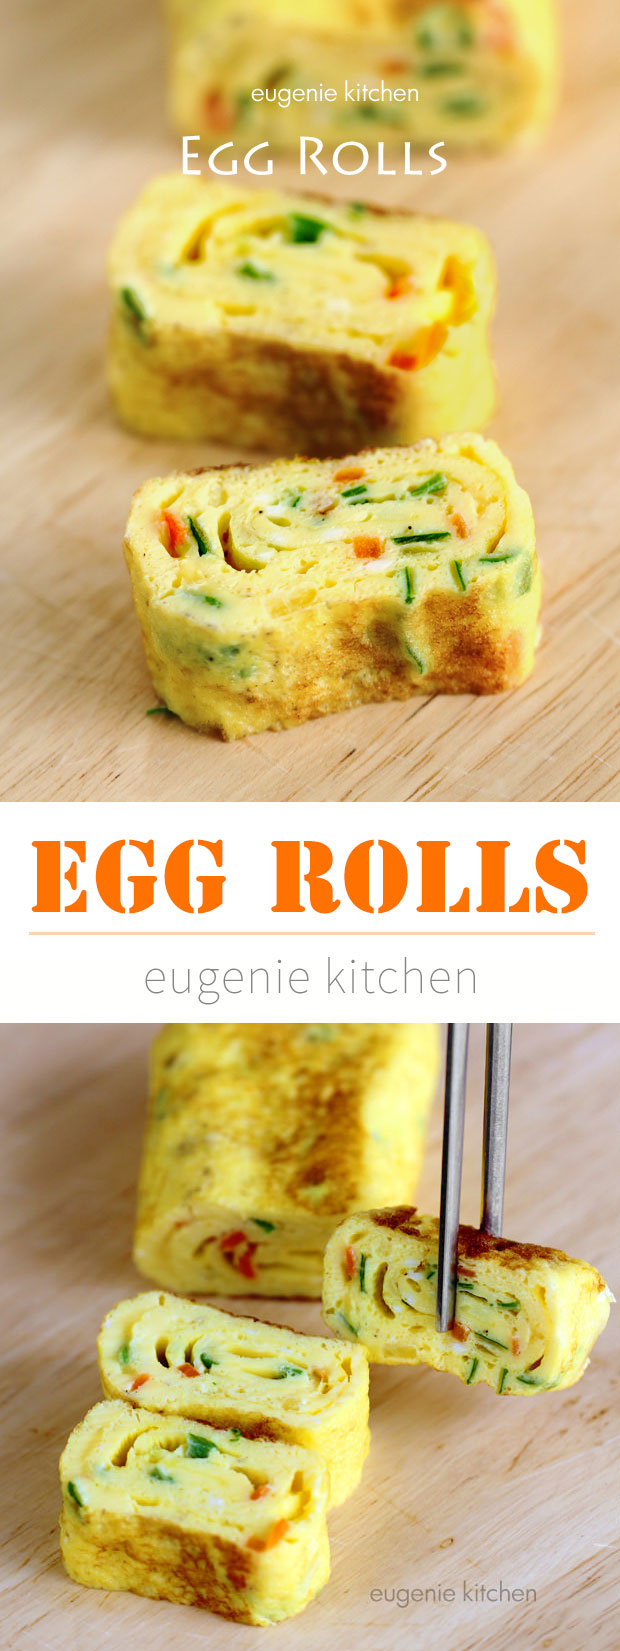 Egg Rolls Recipe - Tamagoyaki by Eugenie Kitchen